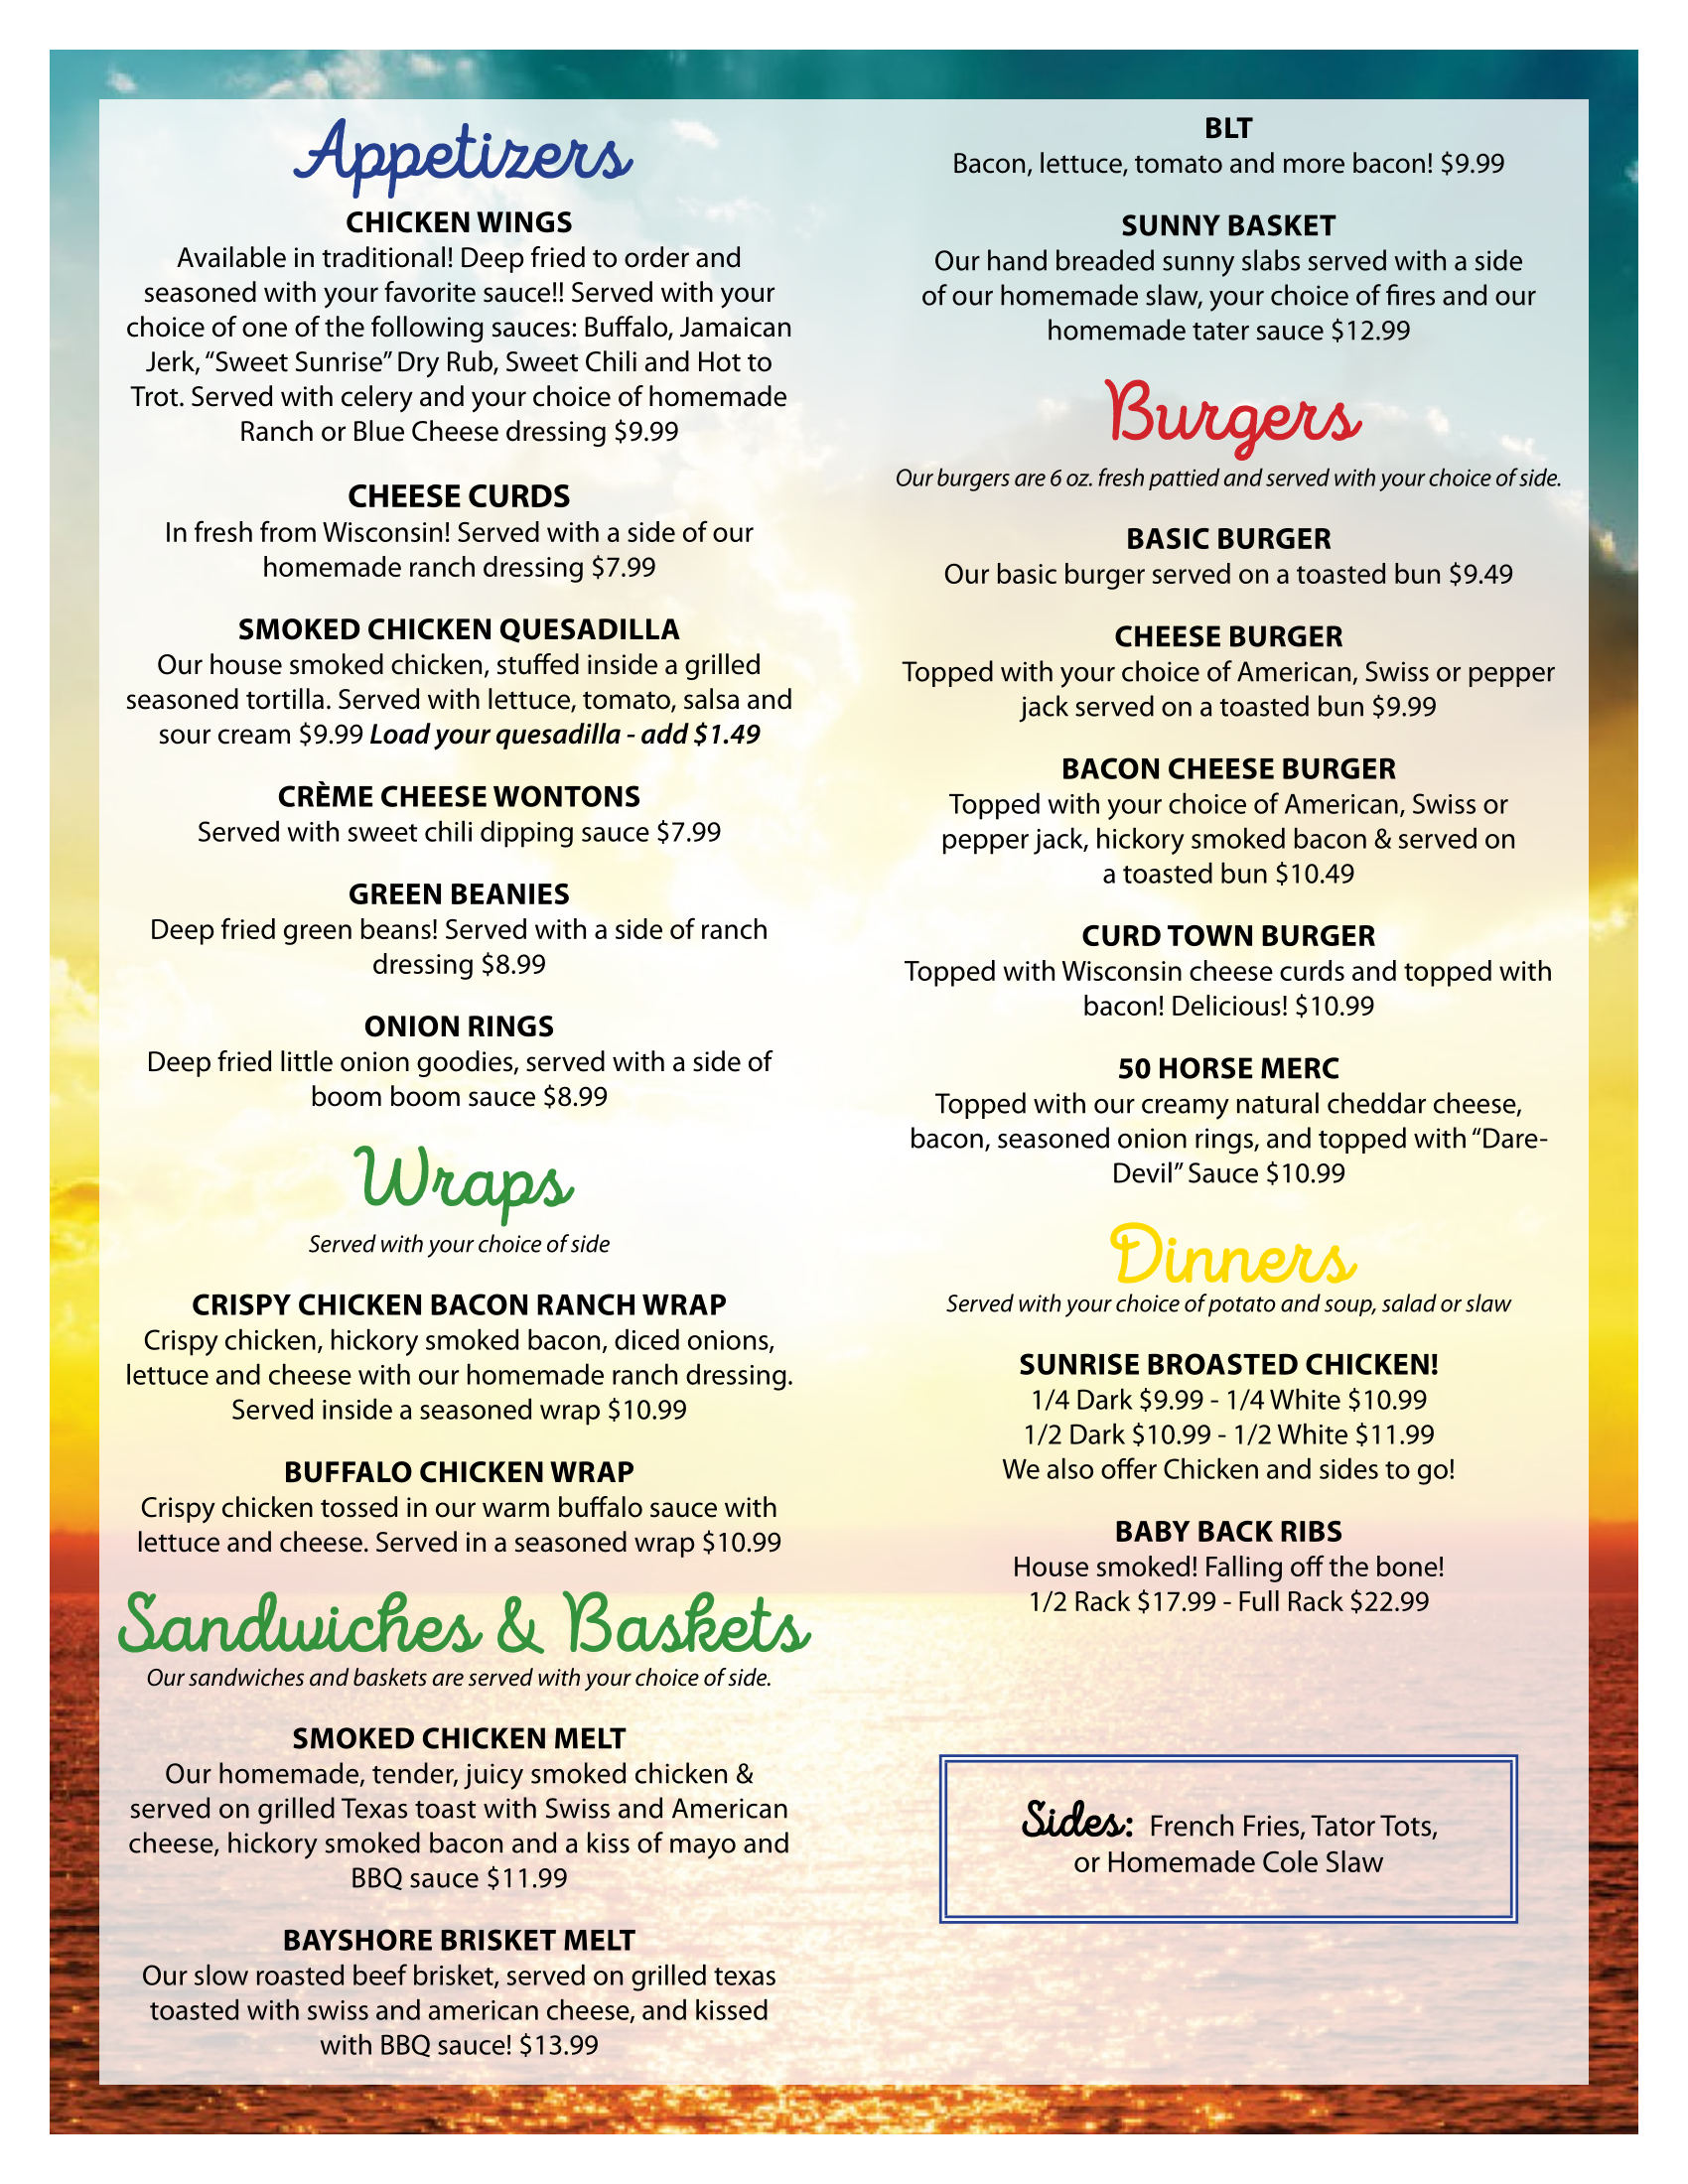 Sunrise on Englund Shores Menu